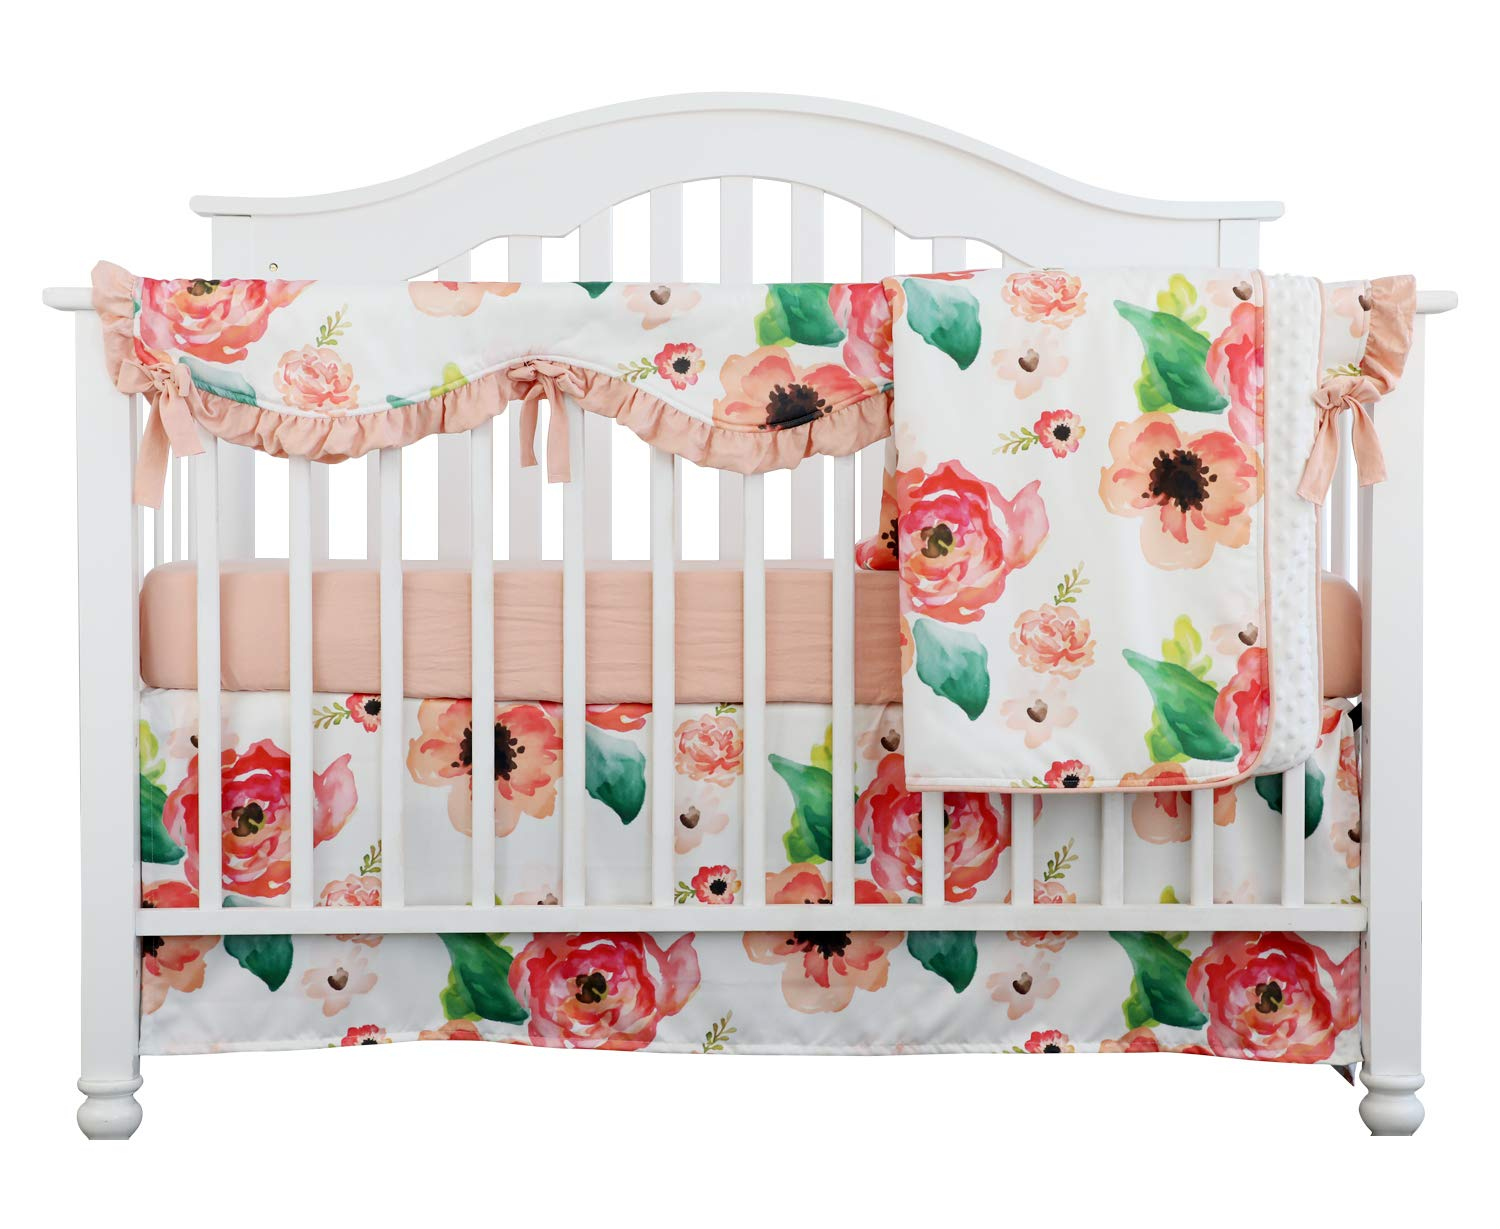 4PCS Crib Rail Guard Set Boho Floral Nursery Baby Bedding Ruffled Crib Skirt Crib Rail Cover Set (Ruffle Coral Watercolor)